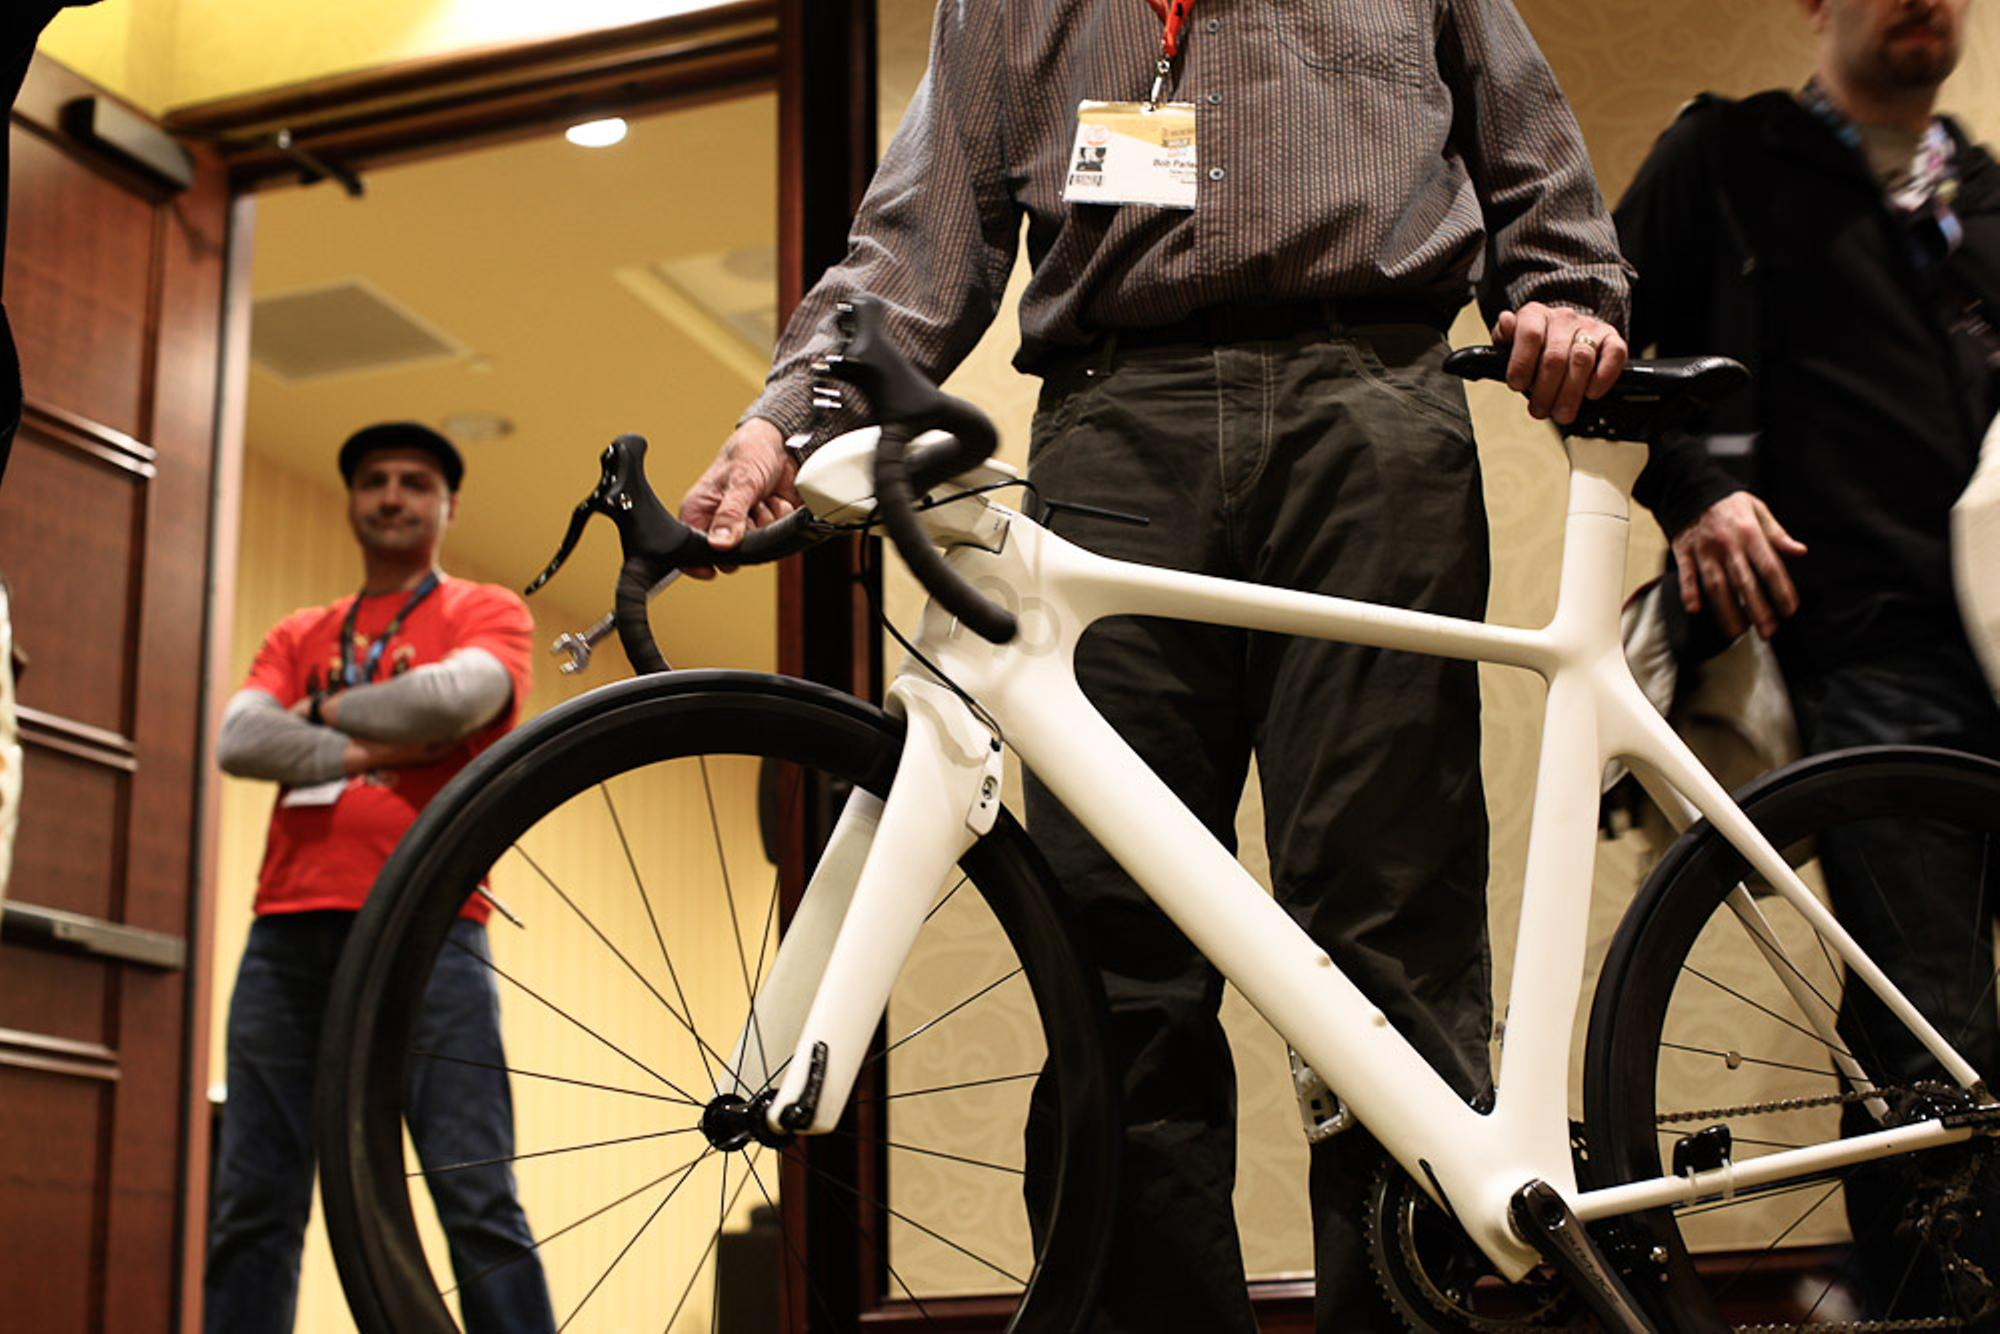 Bob Parlee with the PxP bike.